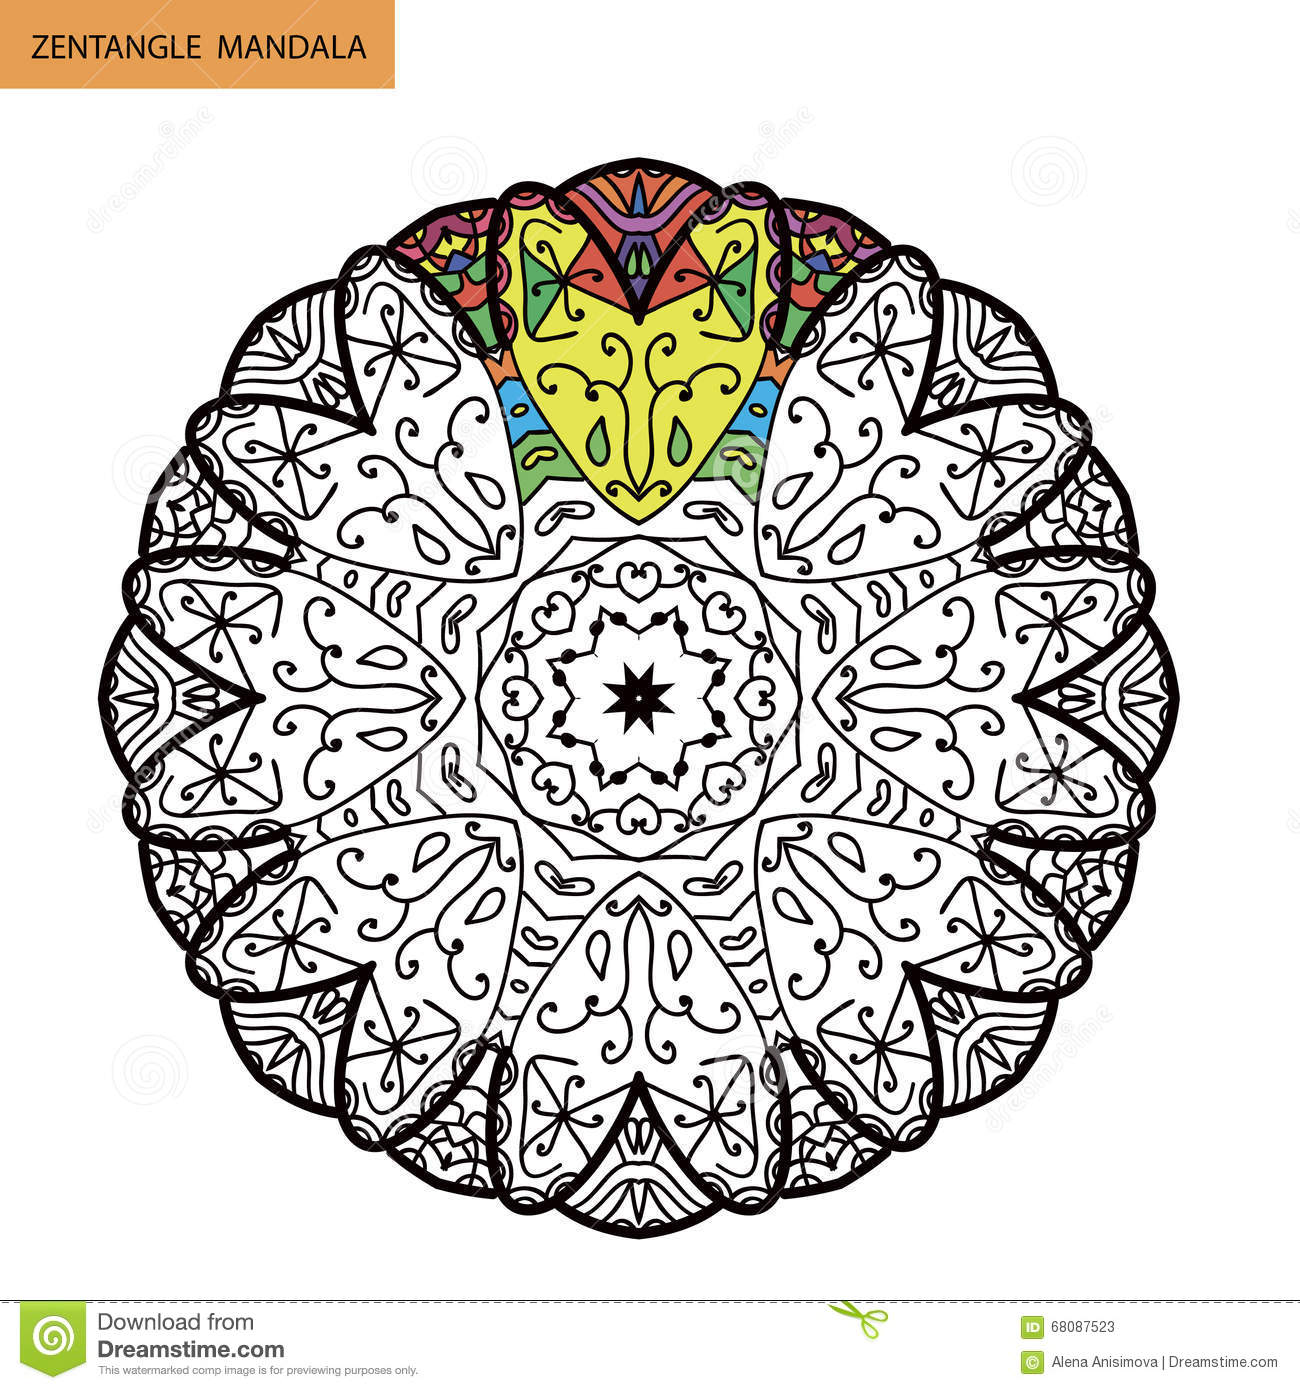 Zentangle Mandala Coloring Book Page For Adults Relax And